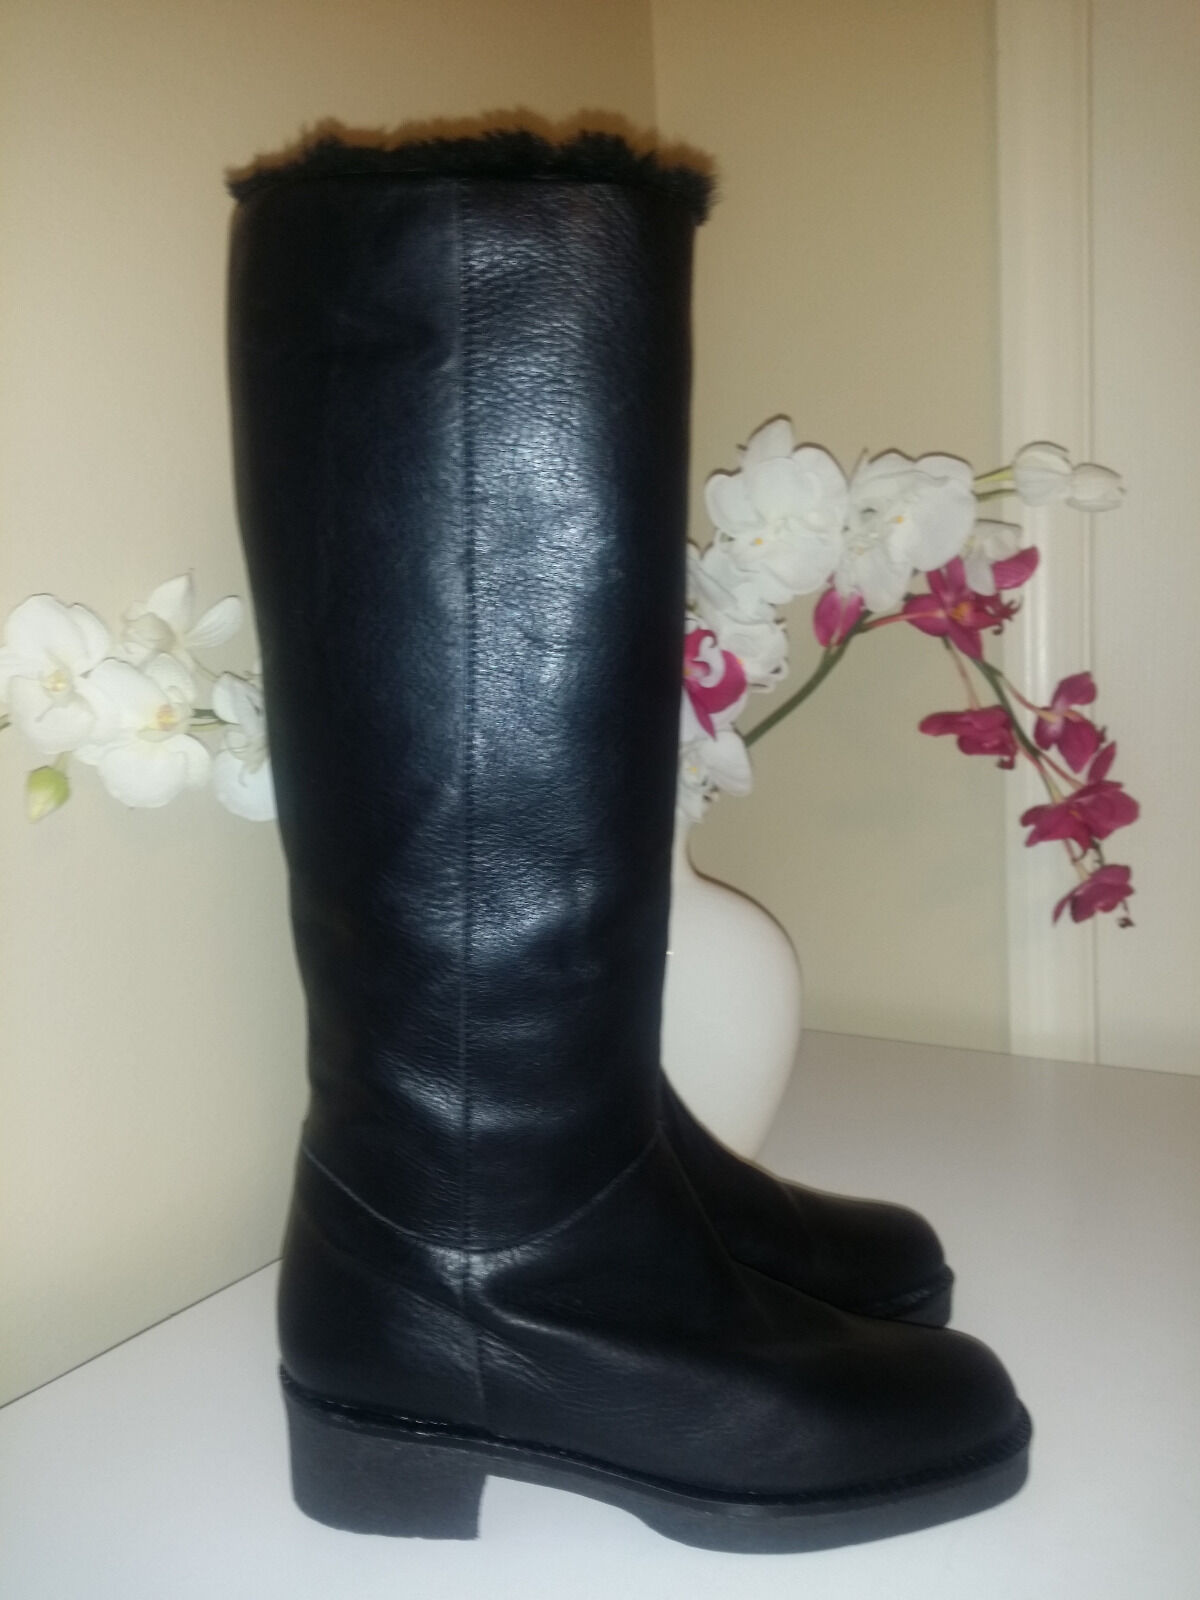 Vicini Italy Ligmar Sole Black Genuine Leather With Fur Lining Boots Sz.39,5 (8)